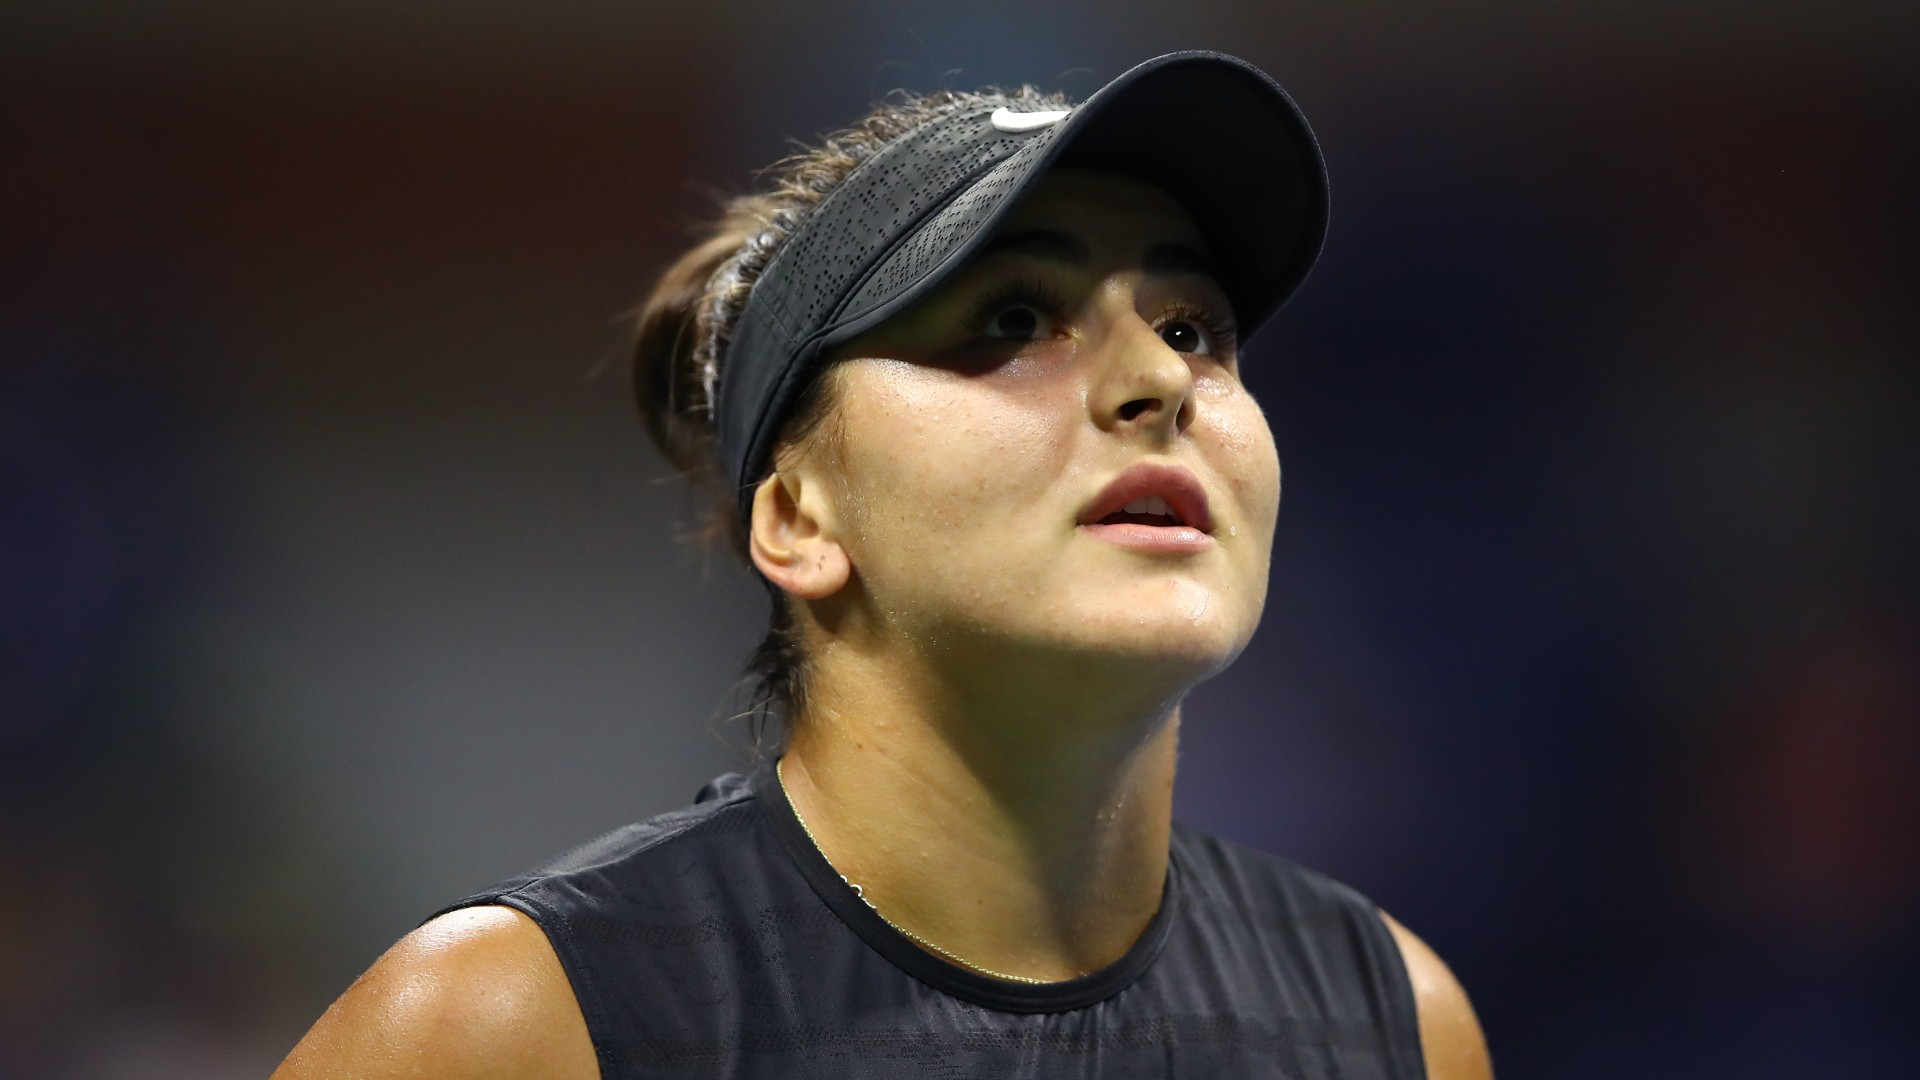 U.S. Open 2020: Canadian Bianca Andreescu withdraws, will not defend title